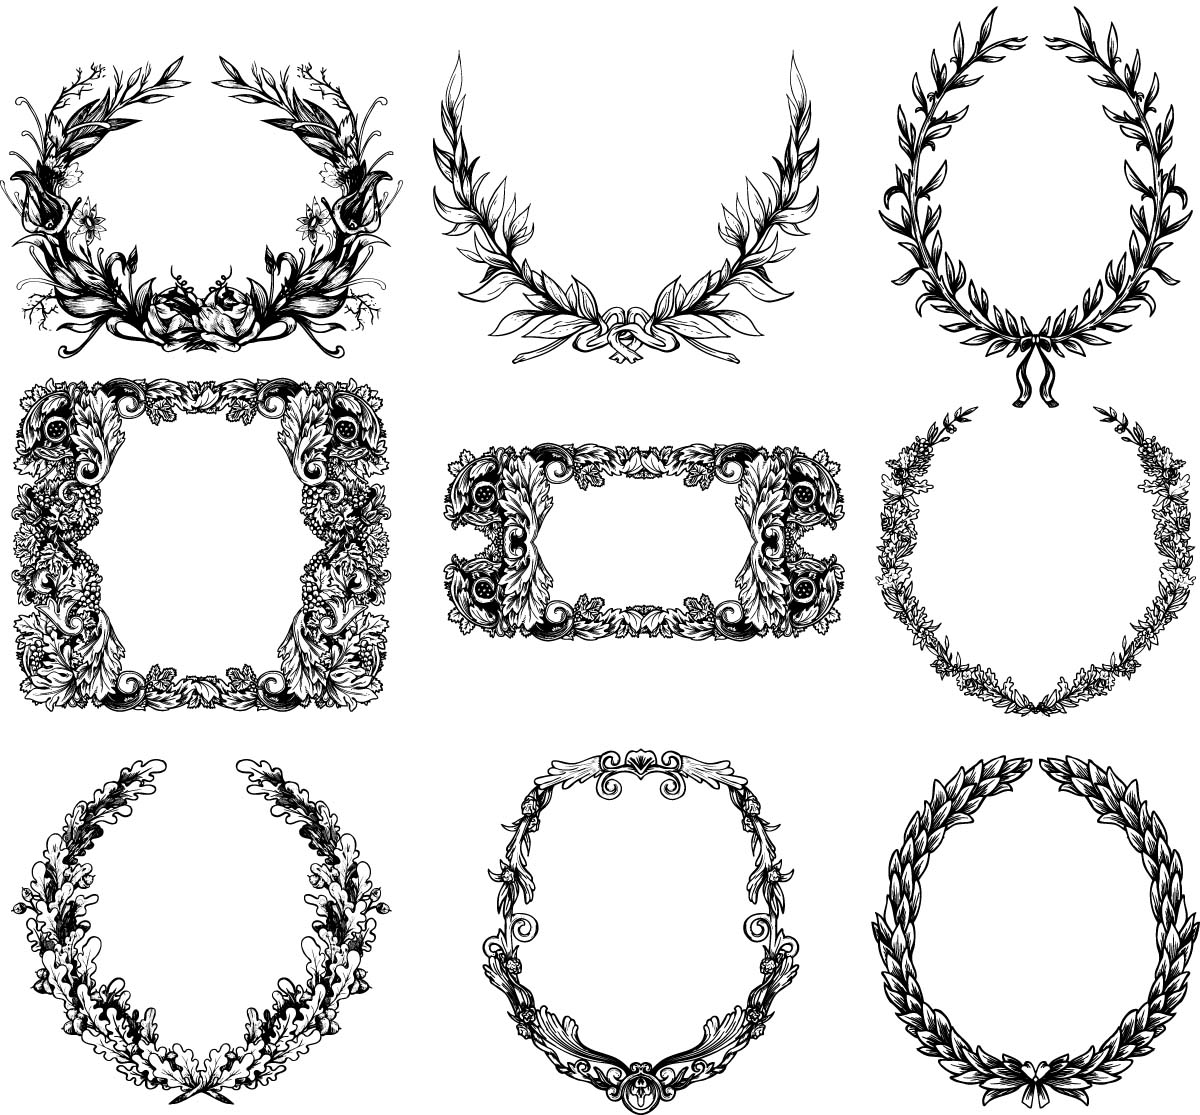 Antique monochrome wreaths set vector